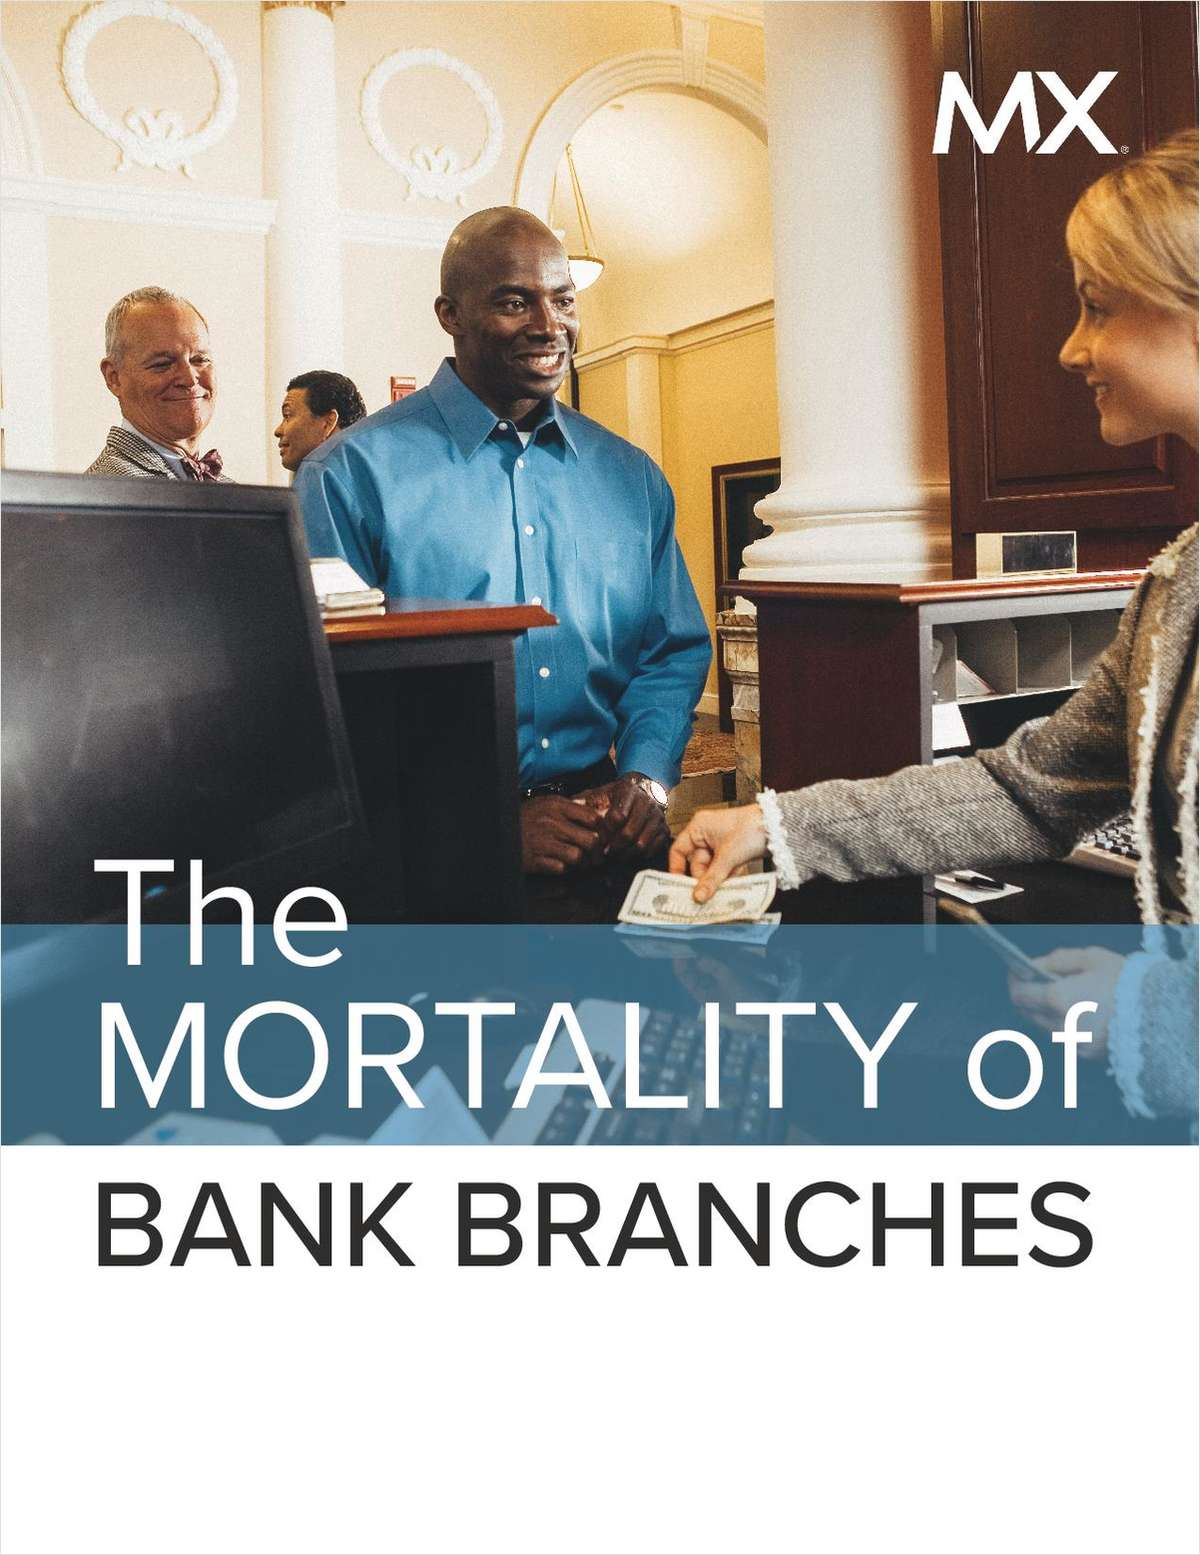 The Mortality of Bank Branches